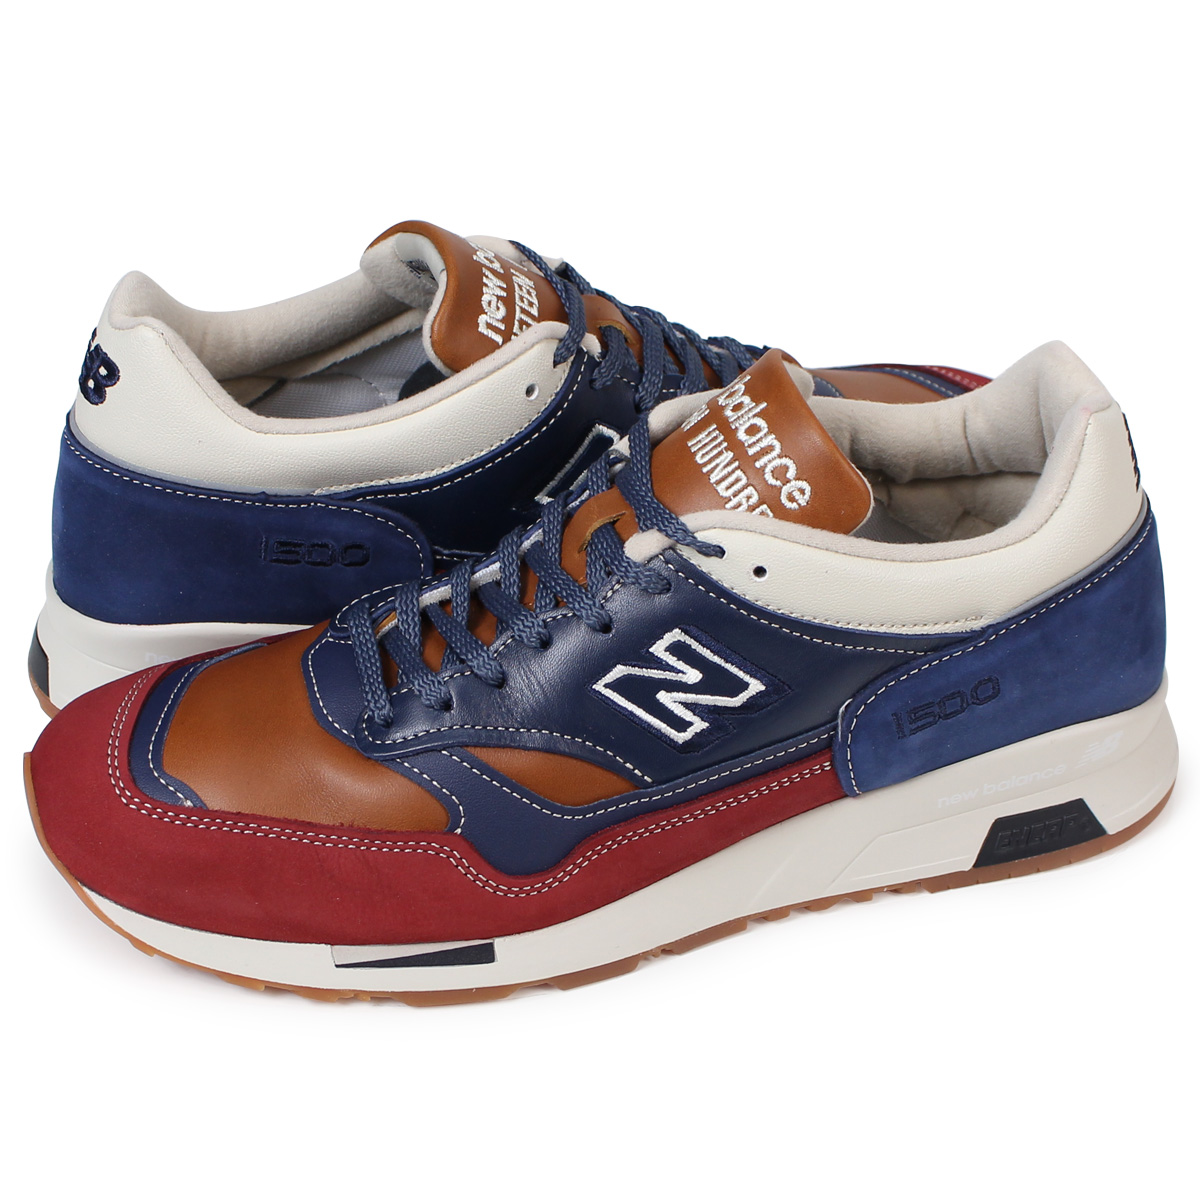 uk availability e37f9 d6d8e new balance M1500MGC New Balance 1500 men's sneakers D Wise MADE IN UK  shoes navy [1712]